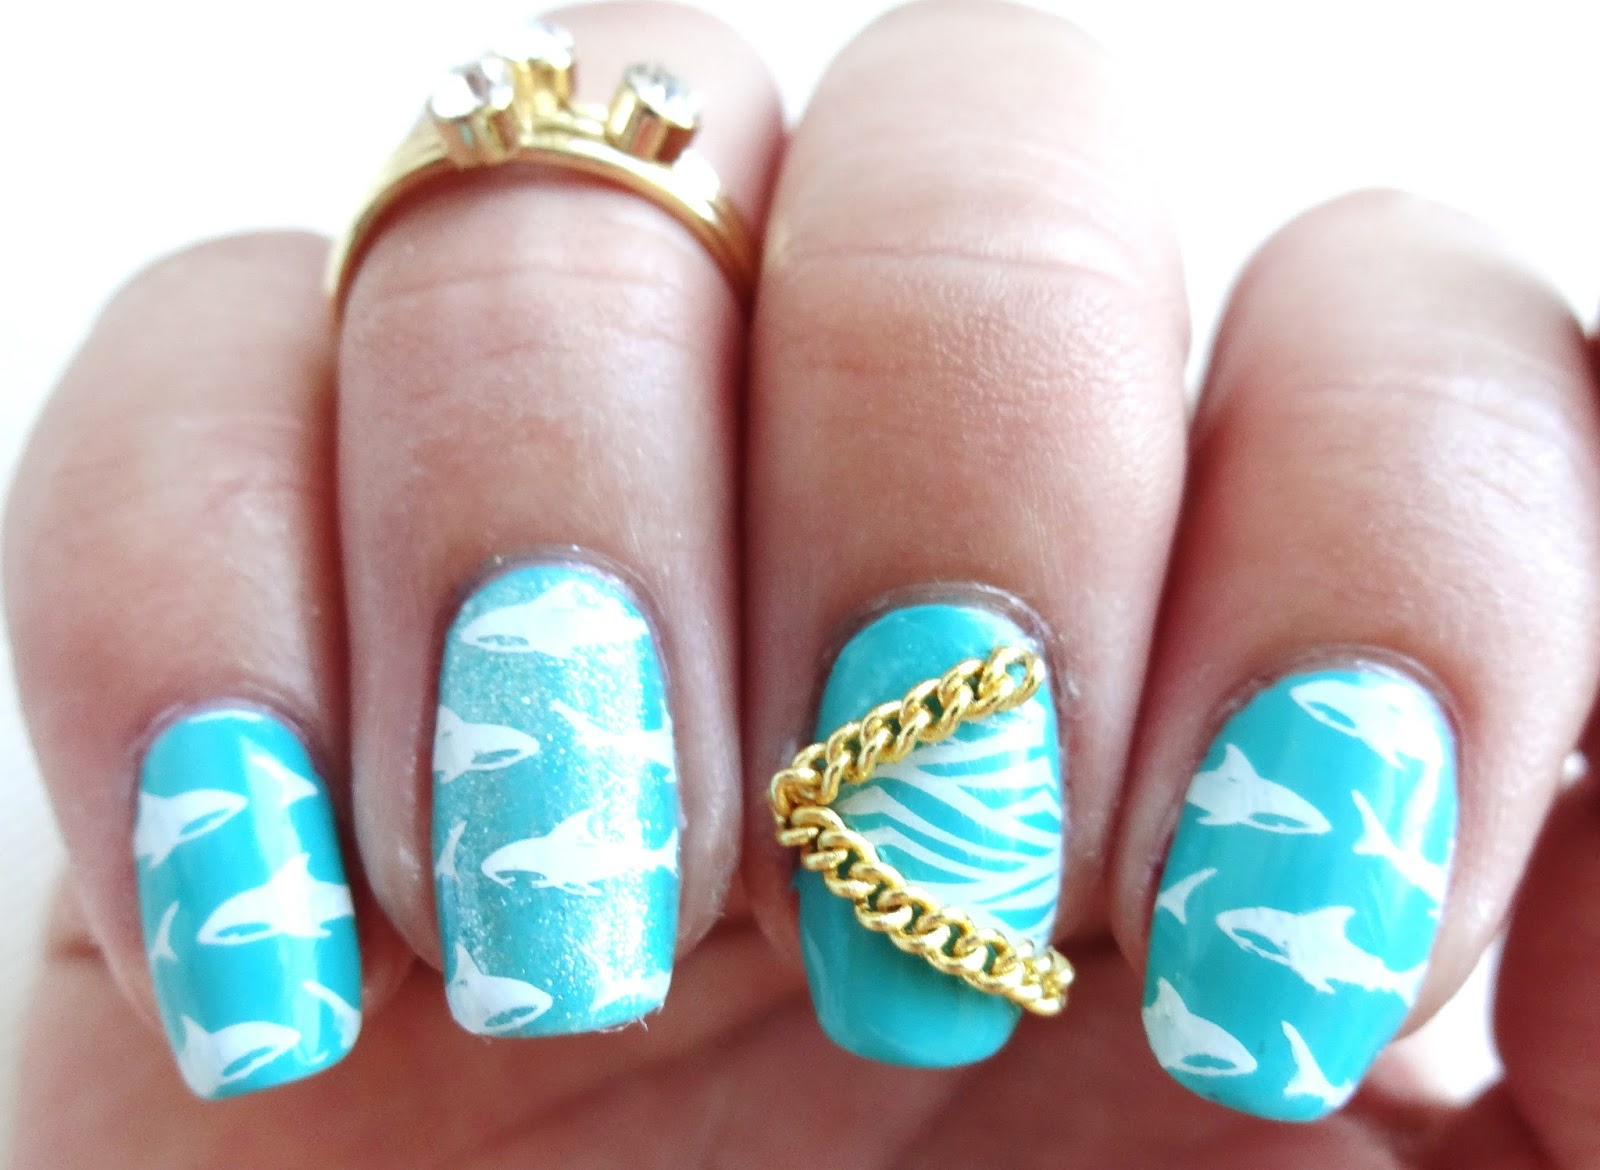 Add chain to nail